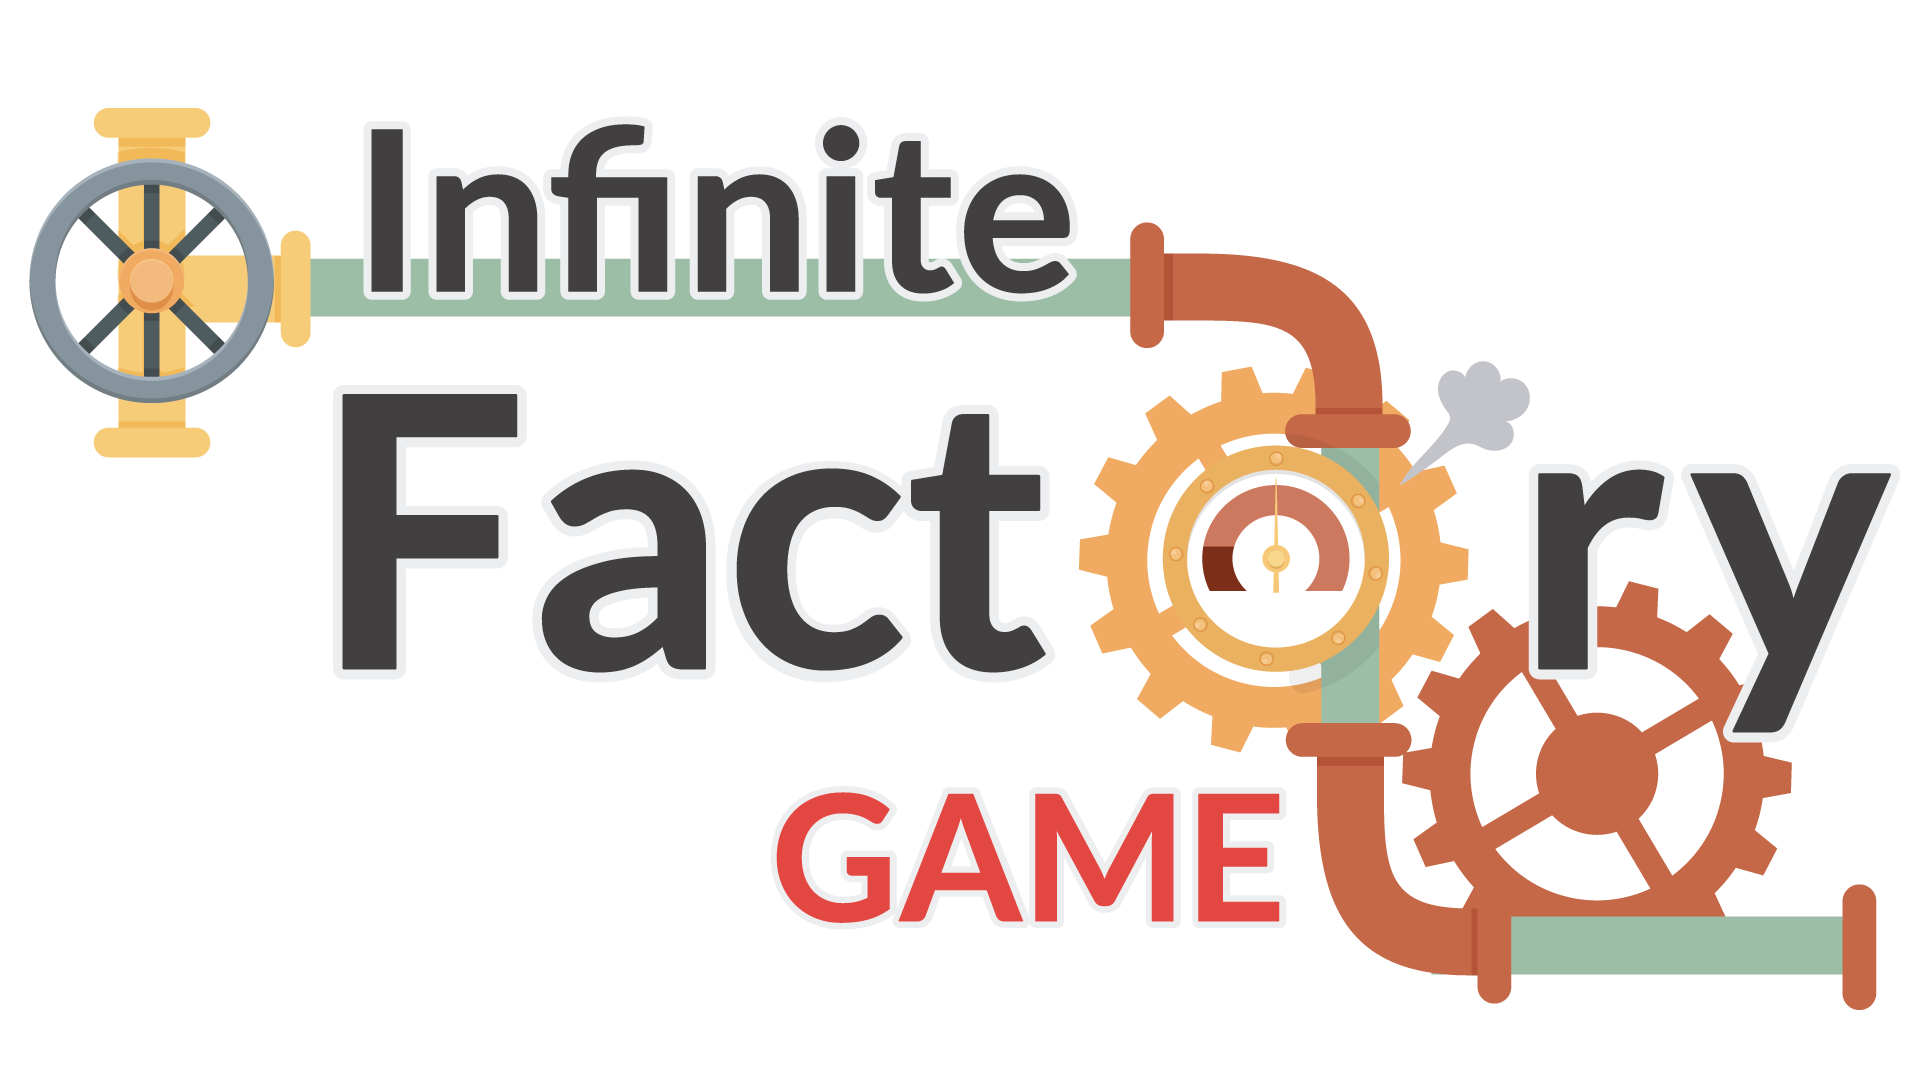 INFINITE FACTORY GAME